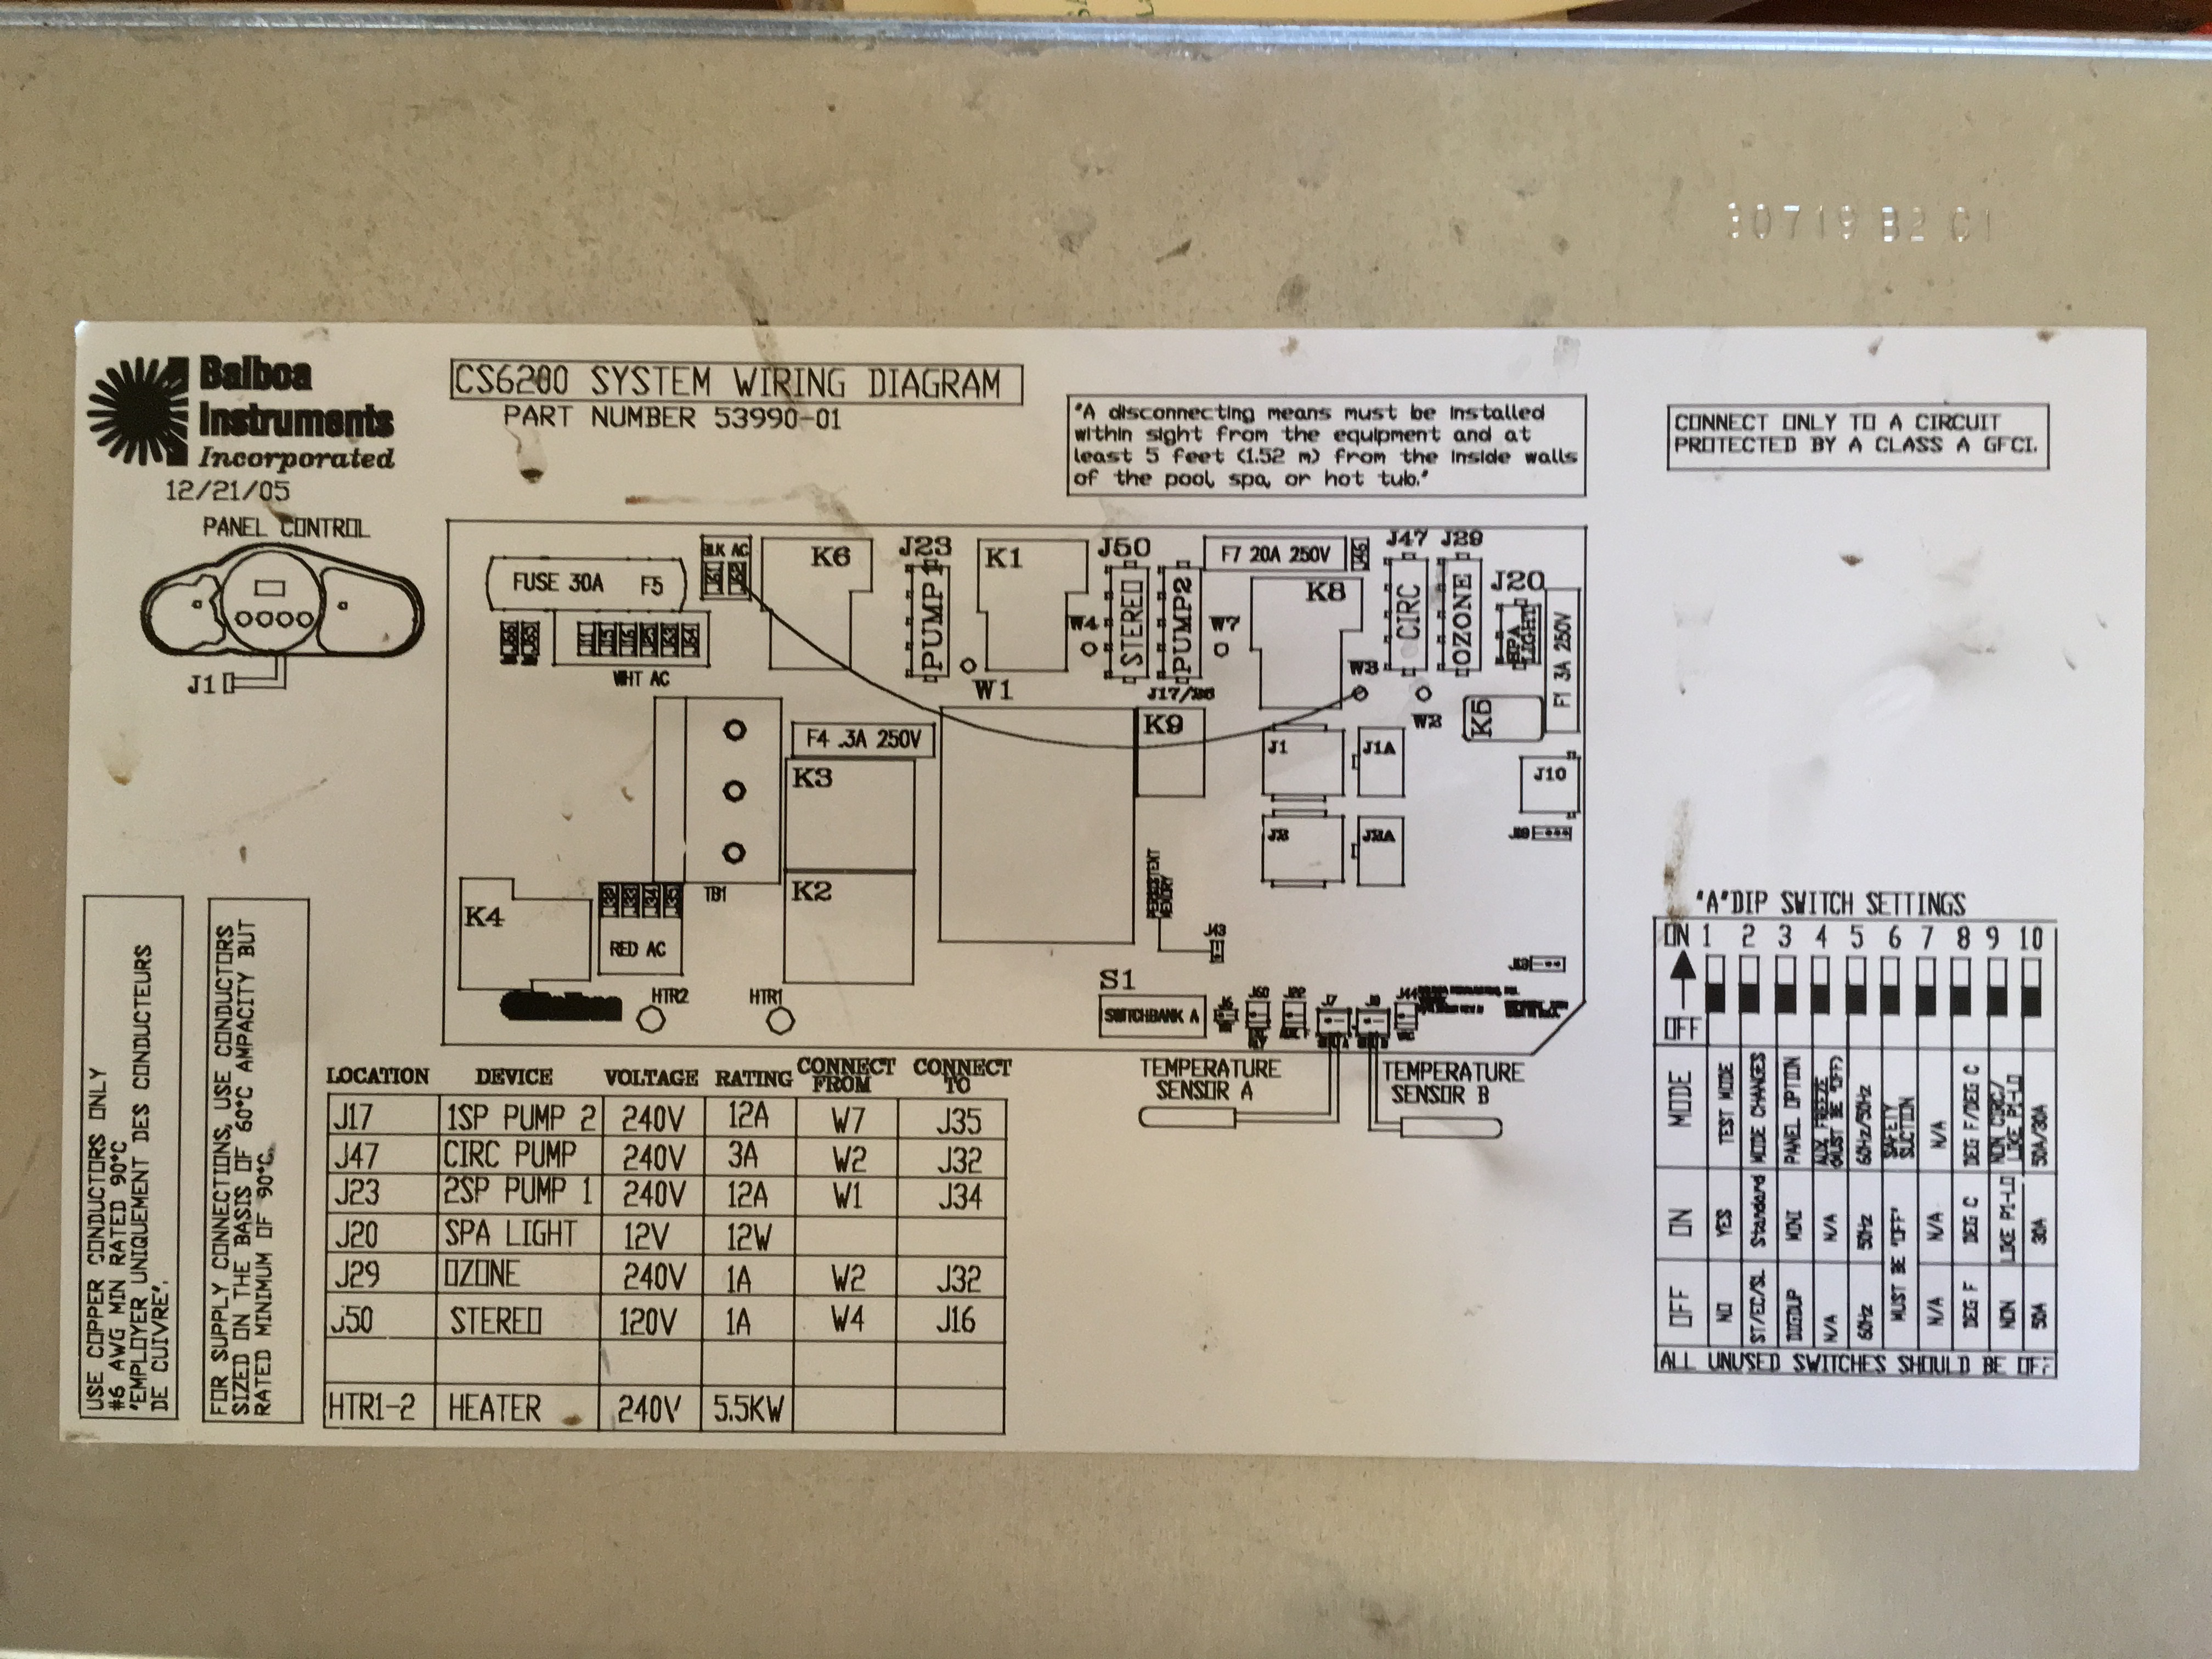 Cal Spa Heater Wiring Diagram Model 5000 Schematics. My Heater On Cal Spa Went Out And Tripped The Breaker Air Switch Wiring Diagram Model 5000. Wiring. Cal Spa Wiring Diagram A4 At Scoala.co